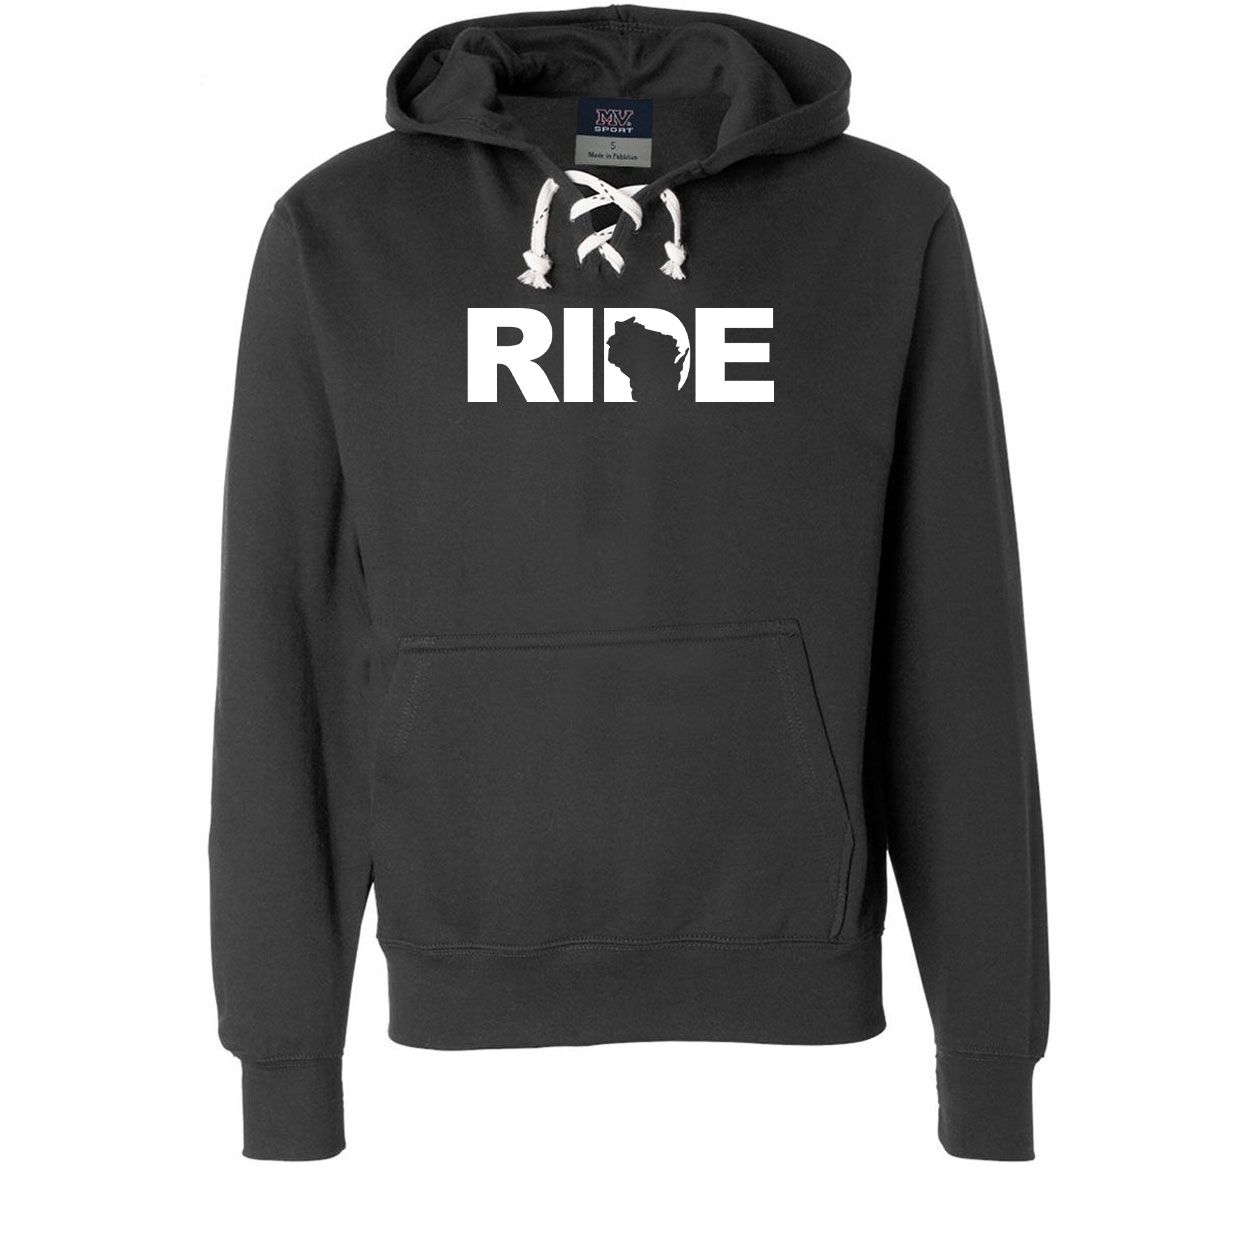 Ride Wisconsin Classic Unisex Premium Hockey Sweatshirt Black (White Logo)